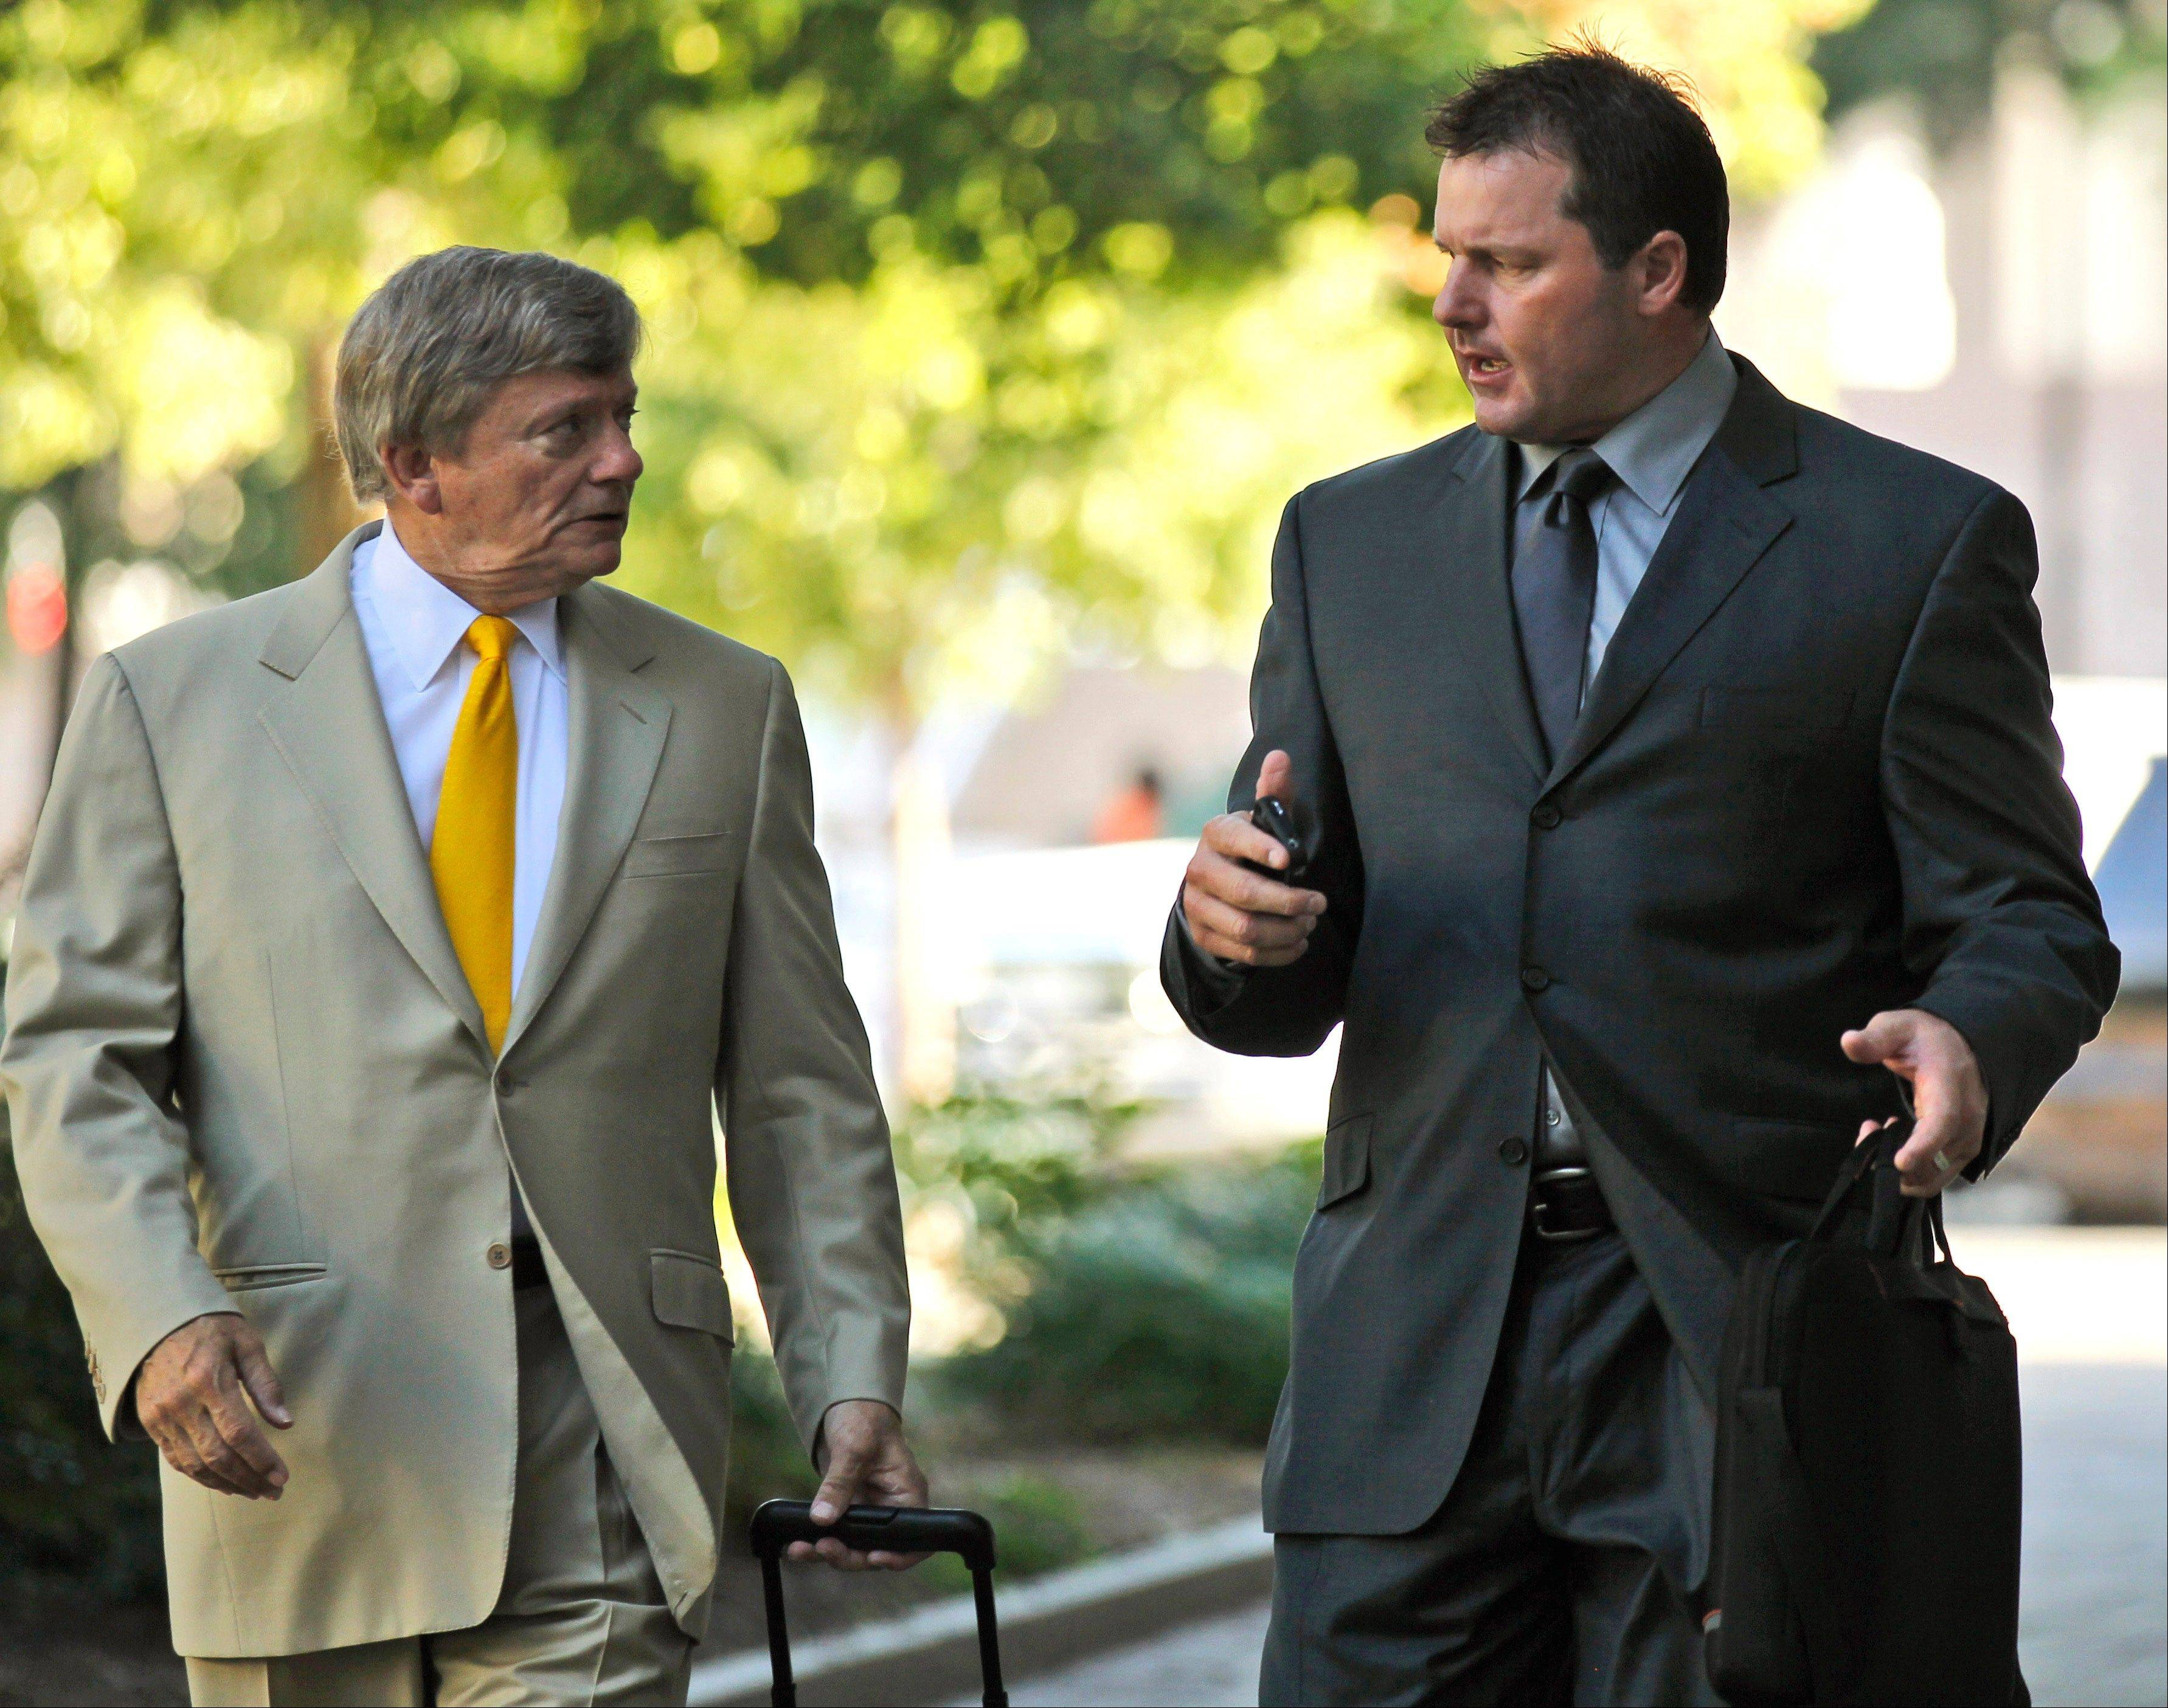 Former Major League Baseball pitcher Roger Clemens, right, and his attorney Rusty Hardin, arrive at federal court in Washington Wednesday for his perjury trial. The newly seated jury of 10 women and two men is scheduled to get to work Wednesday with opening arguments.